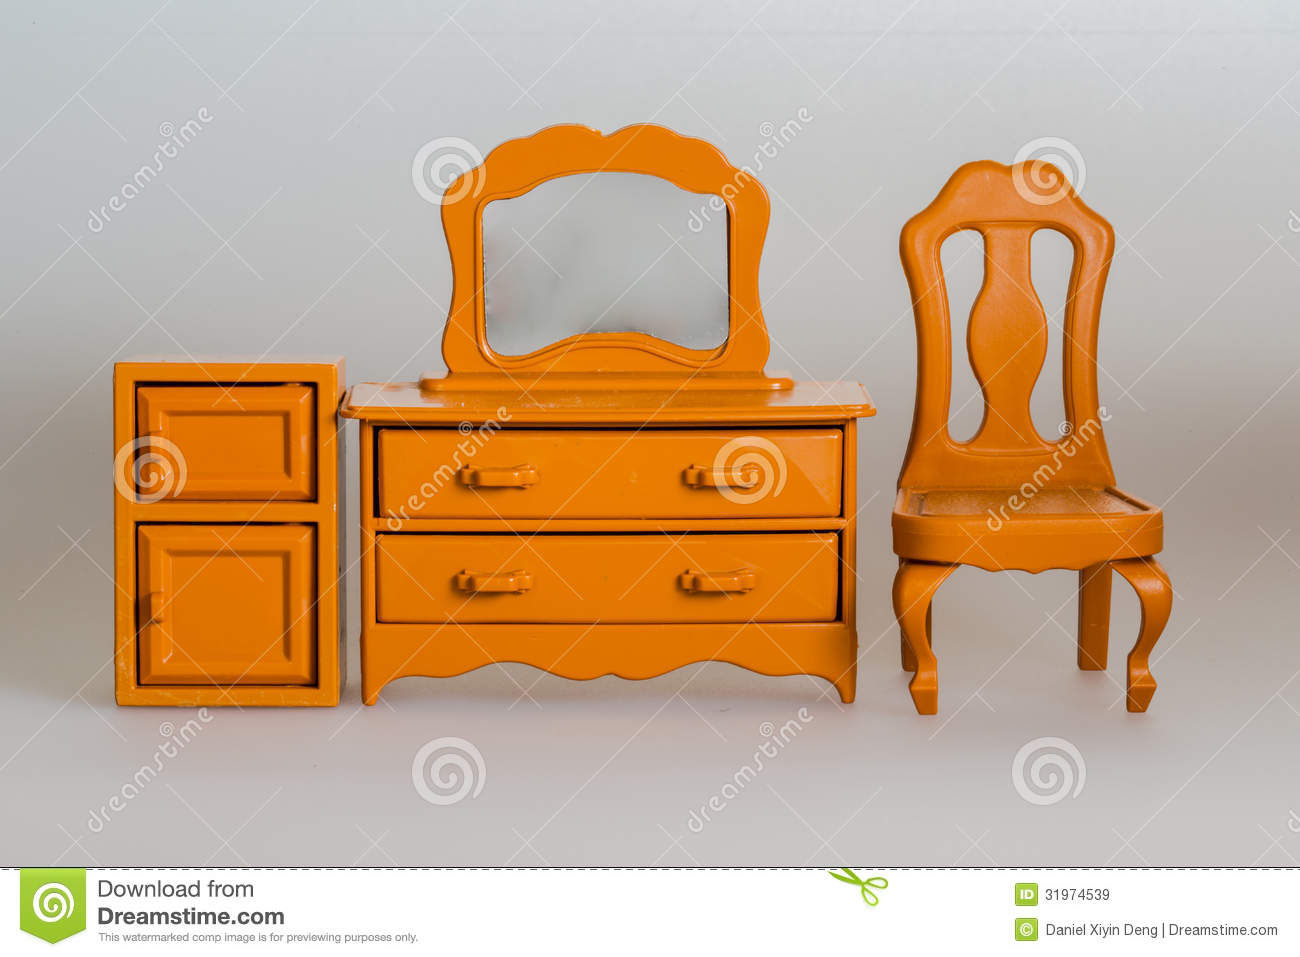 Toy Furniture Wooden Desk Cabinet And Chair Stock Image Image 31974539